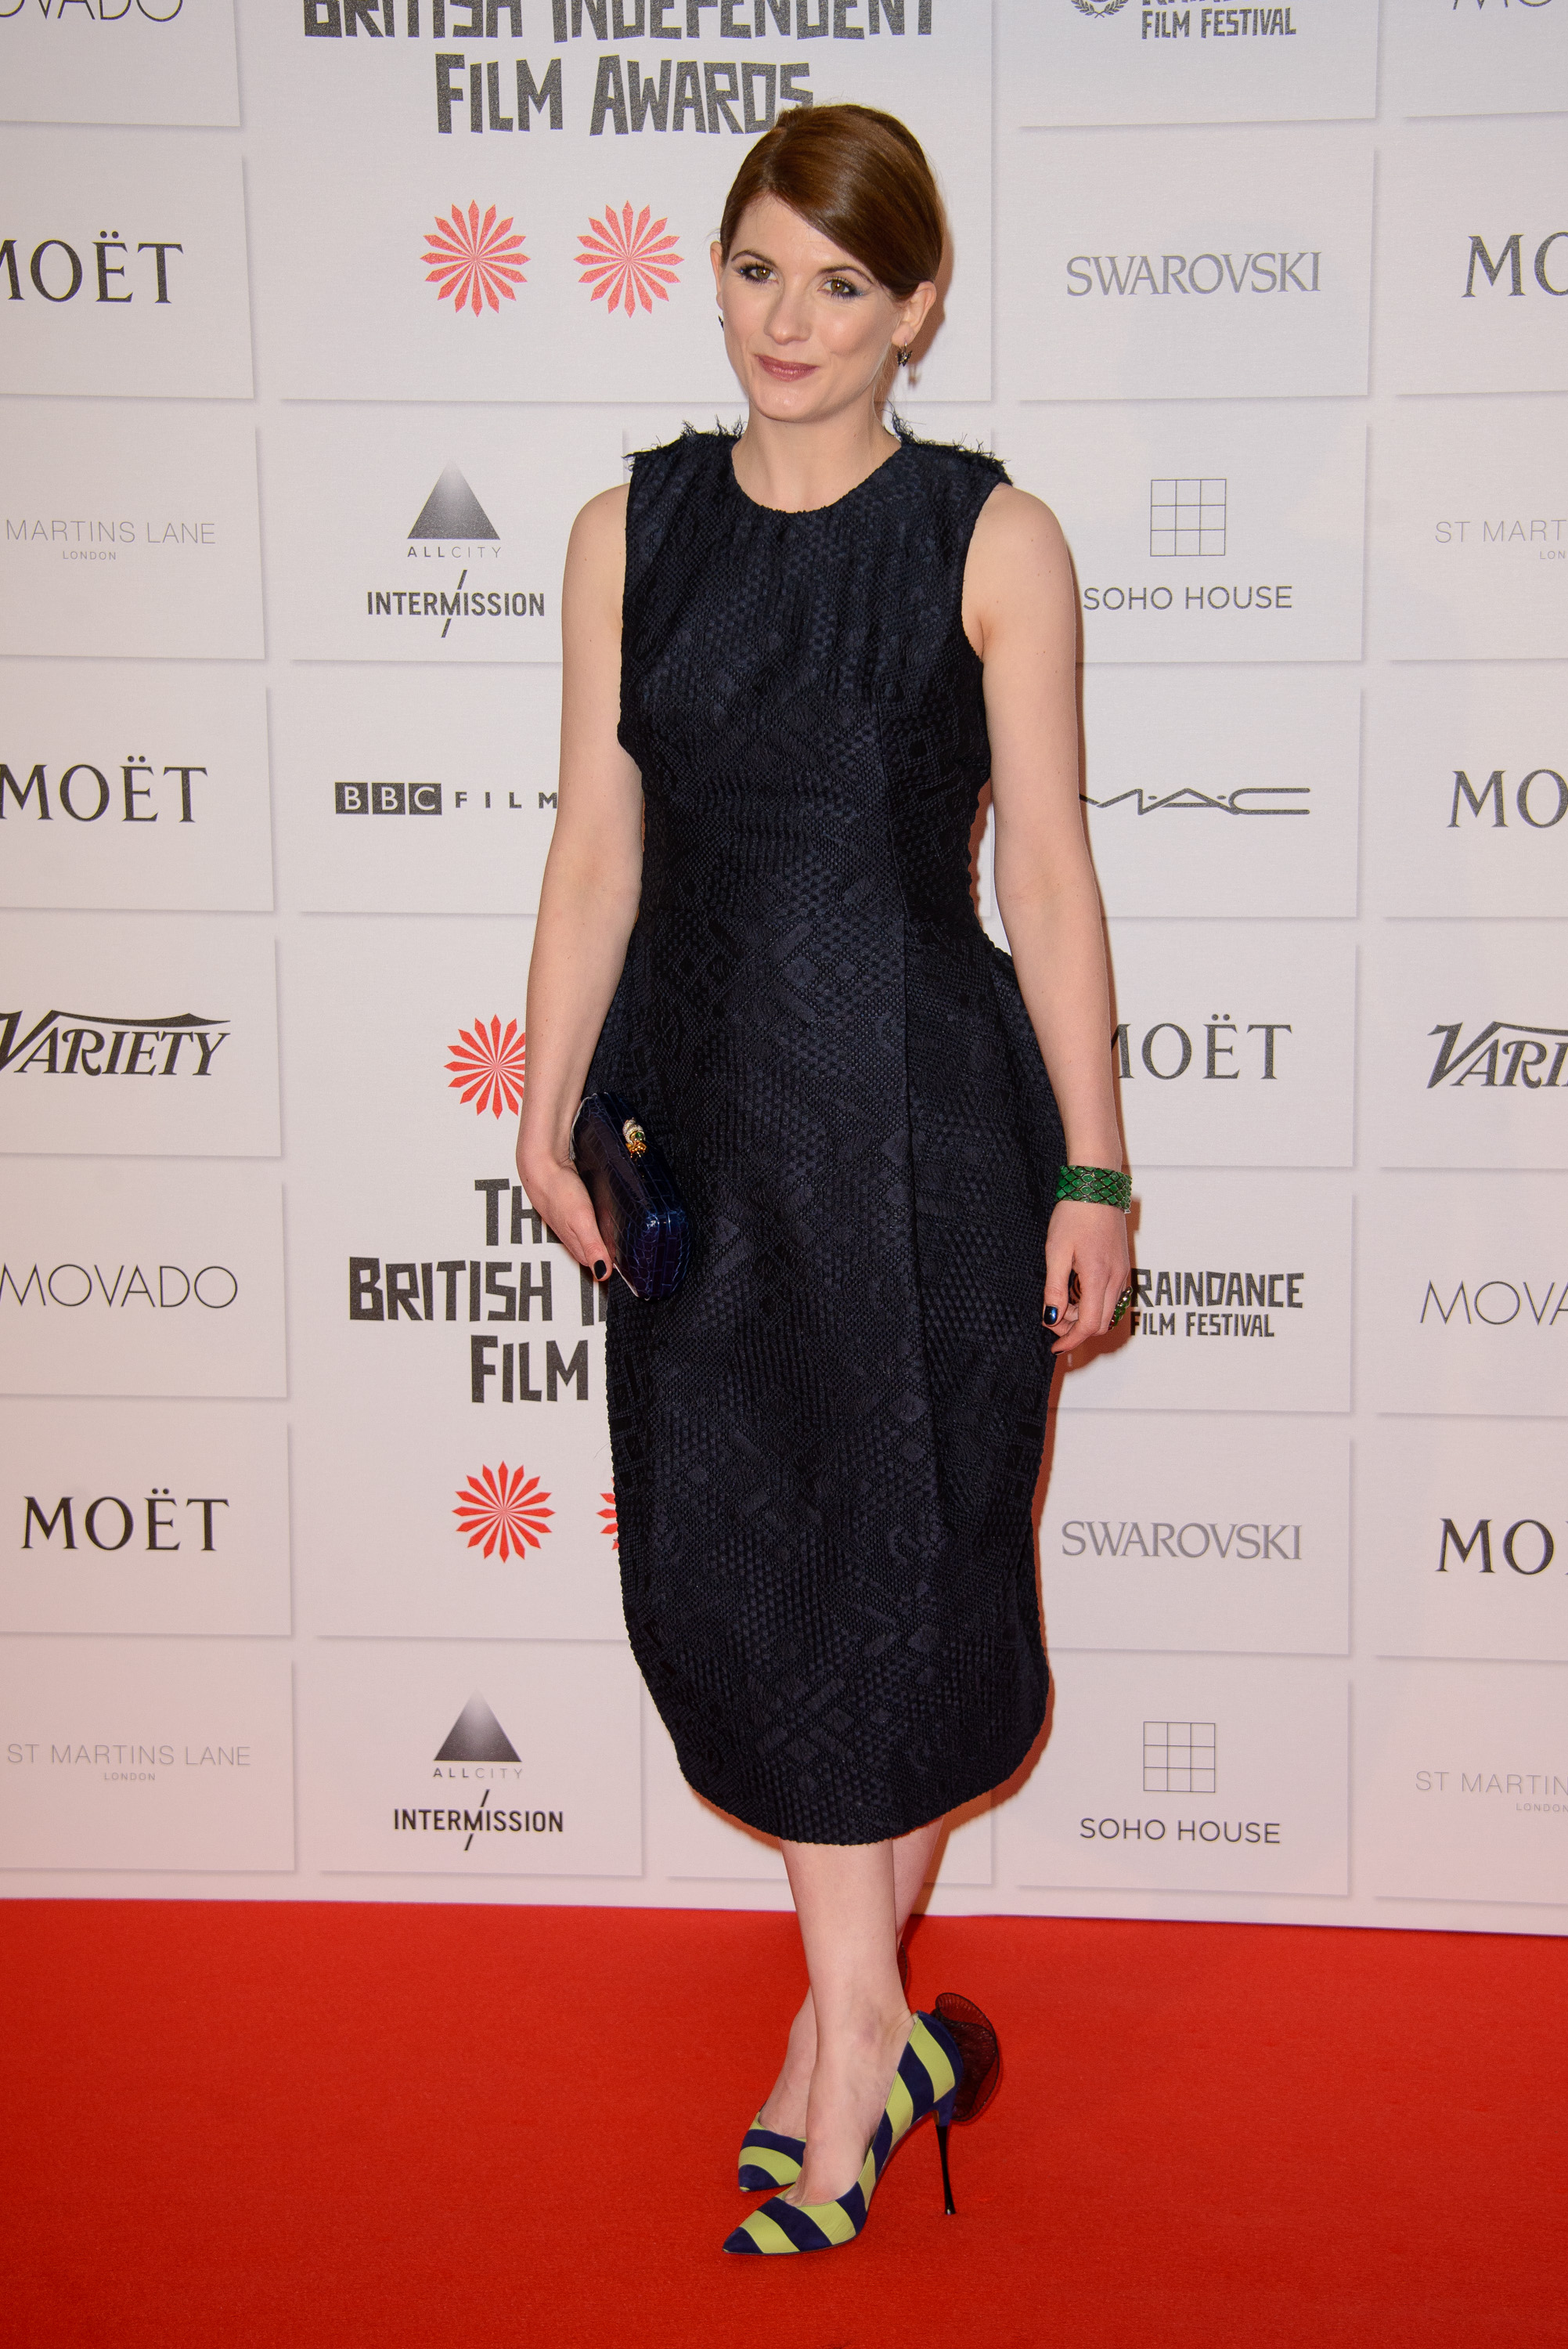 Moet British Independent Film Awards held at Old Billingsgate - Arrivals                                                                      Featuring: Jodie Whittaker                                   Where: London, United Kingdom                                   When: 07 Dec 2014                                   Credit: WENN.com                                                                      *****please credit Joe/WENN*****